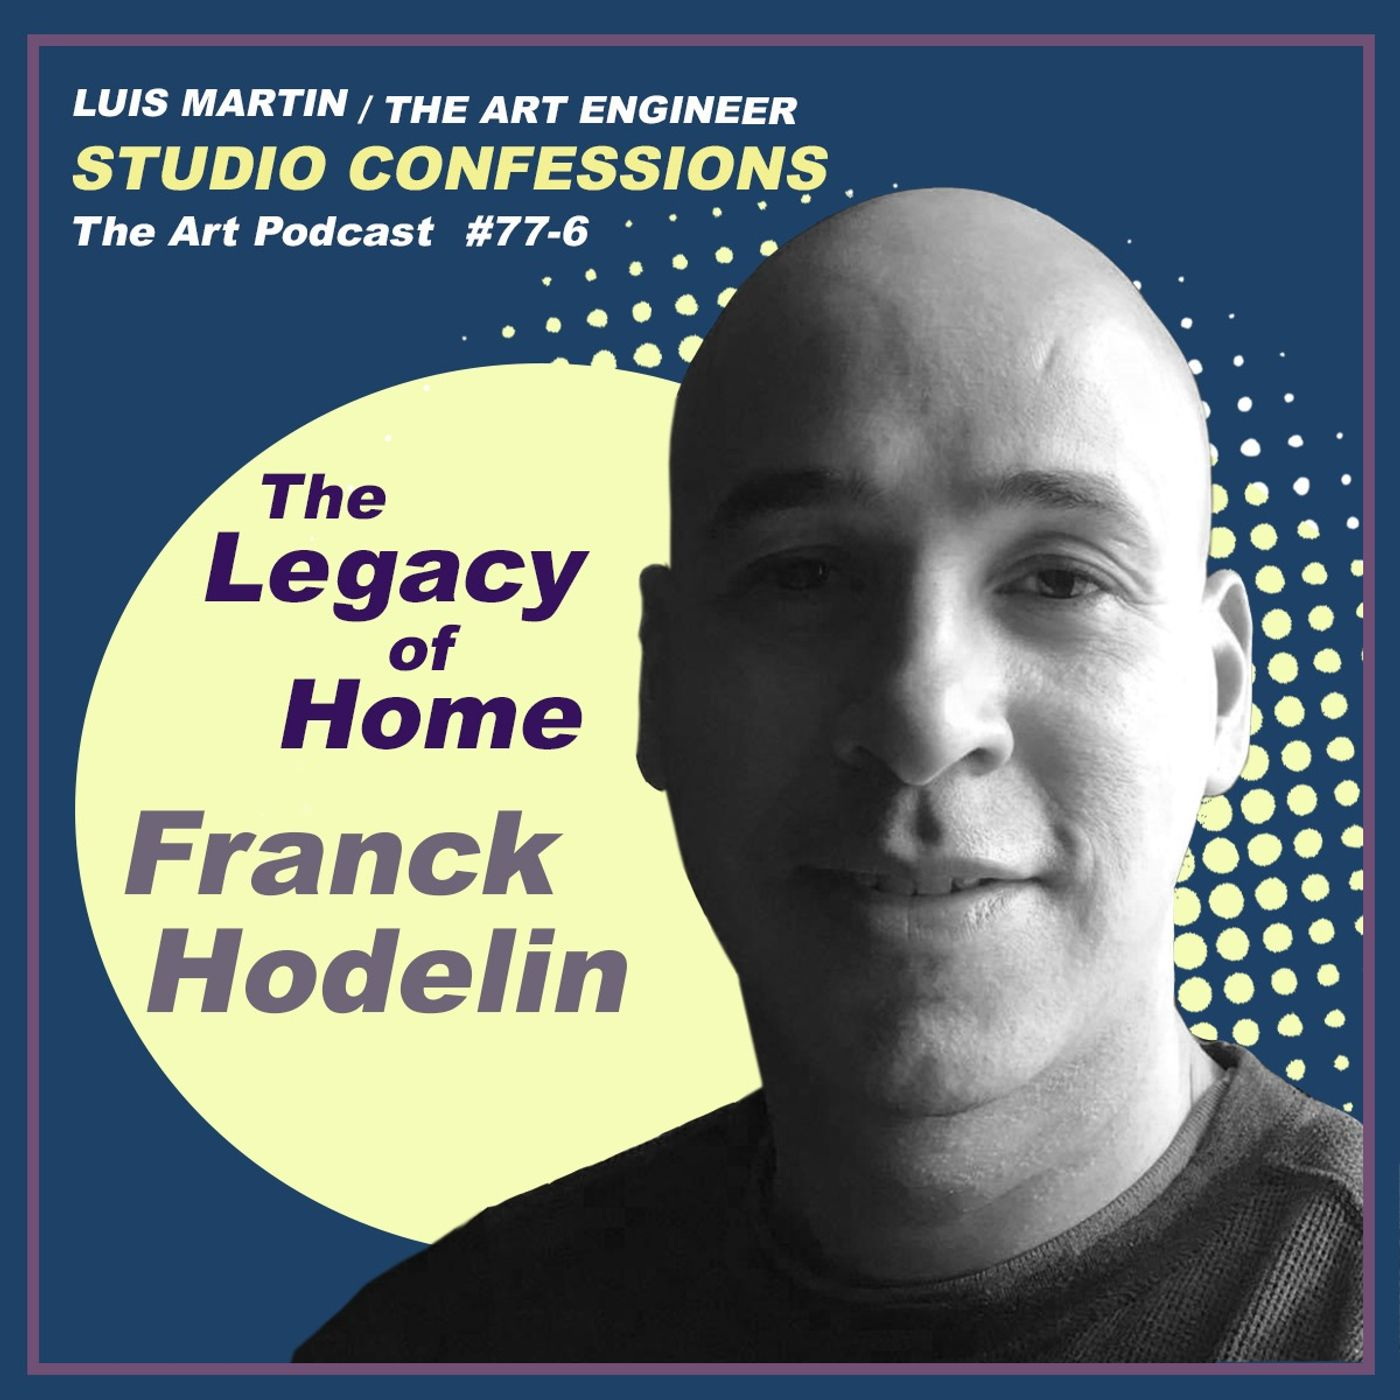 Franck Hodelin: The Legacy of Home